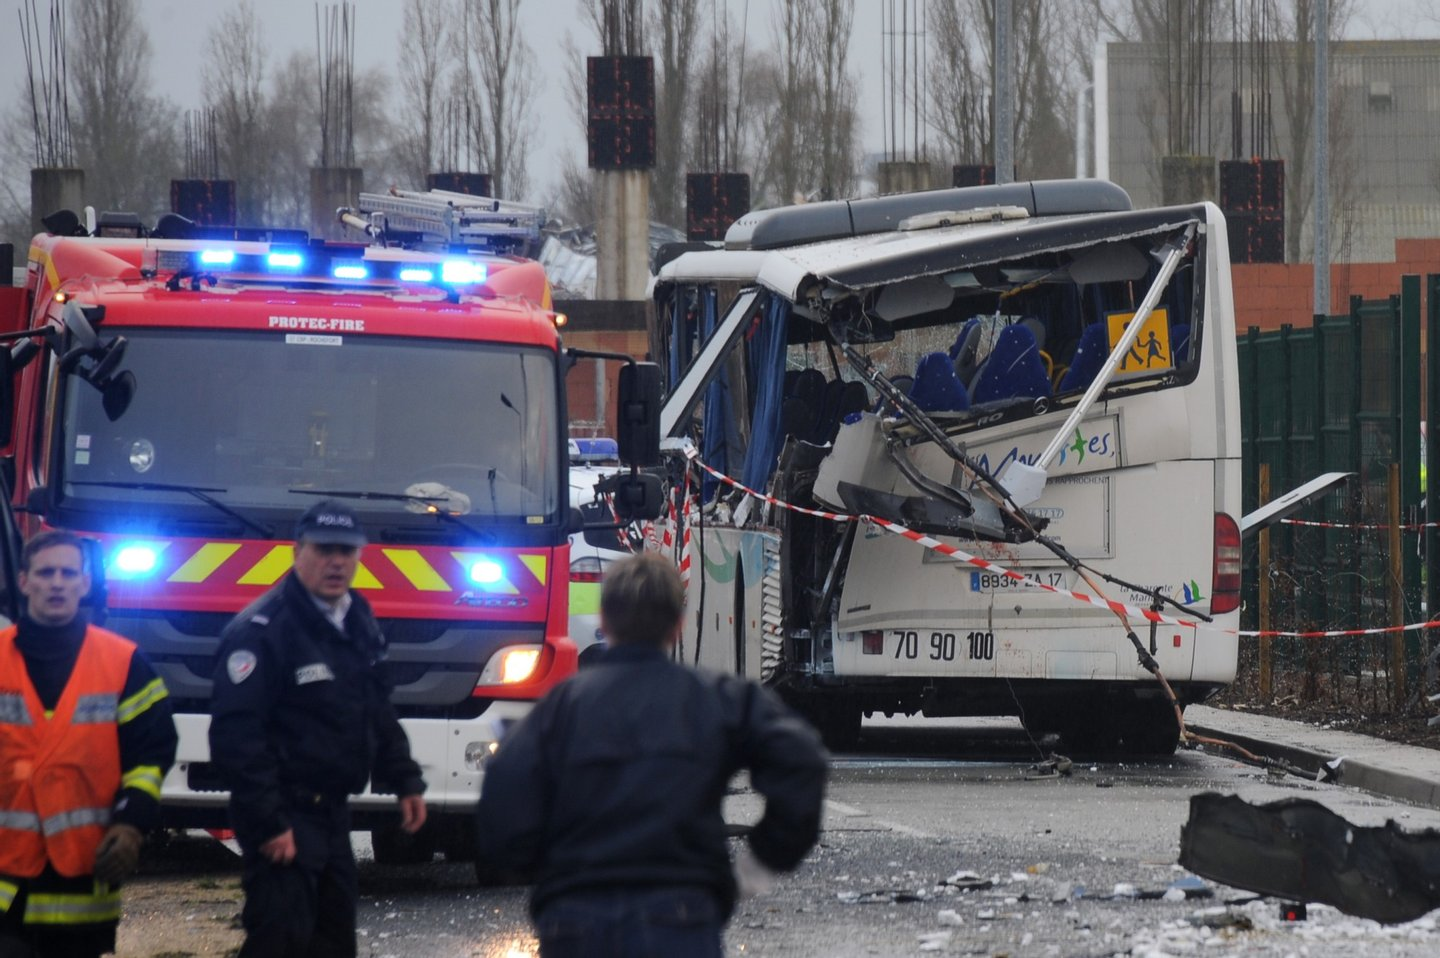 A French police officer stands near the wreckage of a school minibus after it crashed into a truck near Rochefort on February 11, 2016, killing at least six children, police said, a day after another road accident involving a school bus left two youngsters dead. The head-on smash with a lorry carrying rubble came around 7:15 am (0615 GMT) near Rochefort in the western Charente-Maritime region. / AFP / XAVIER LEOTY (Photo credit should read XAVIER LEOTY/AFP/Getty Images)